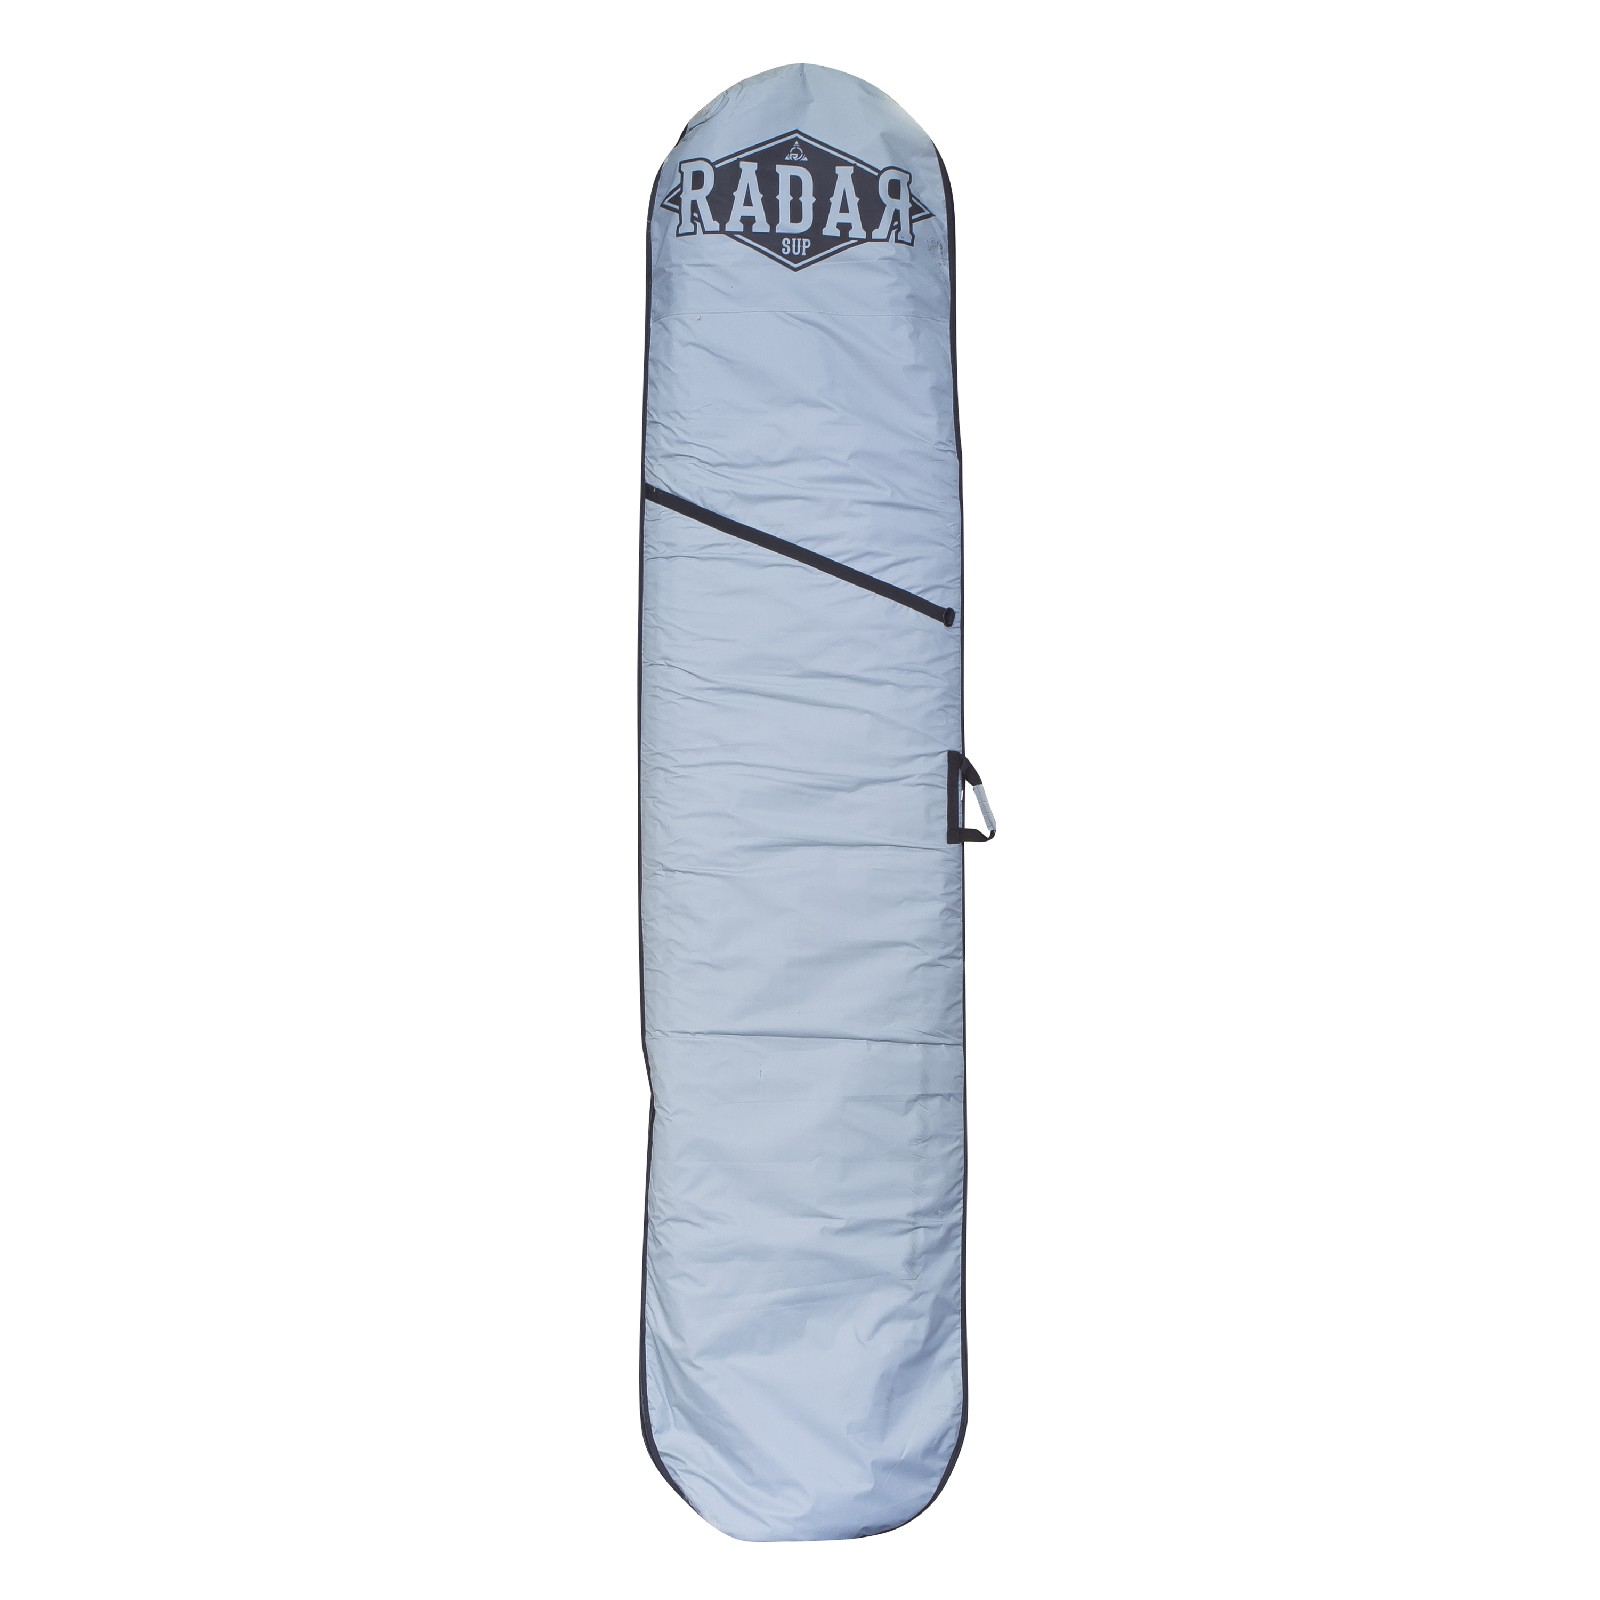 THE SCEPTER PADDED SUP BAG RADAR 2019